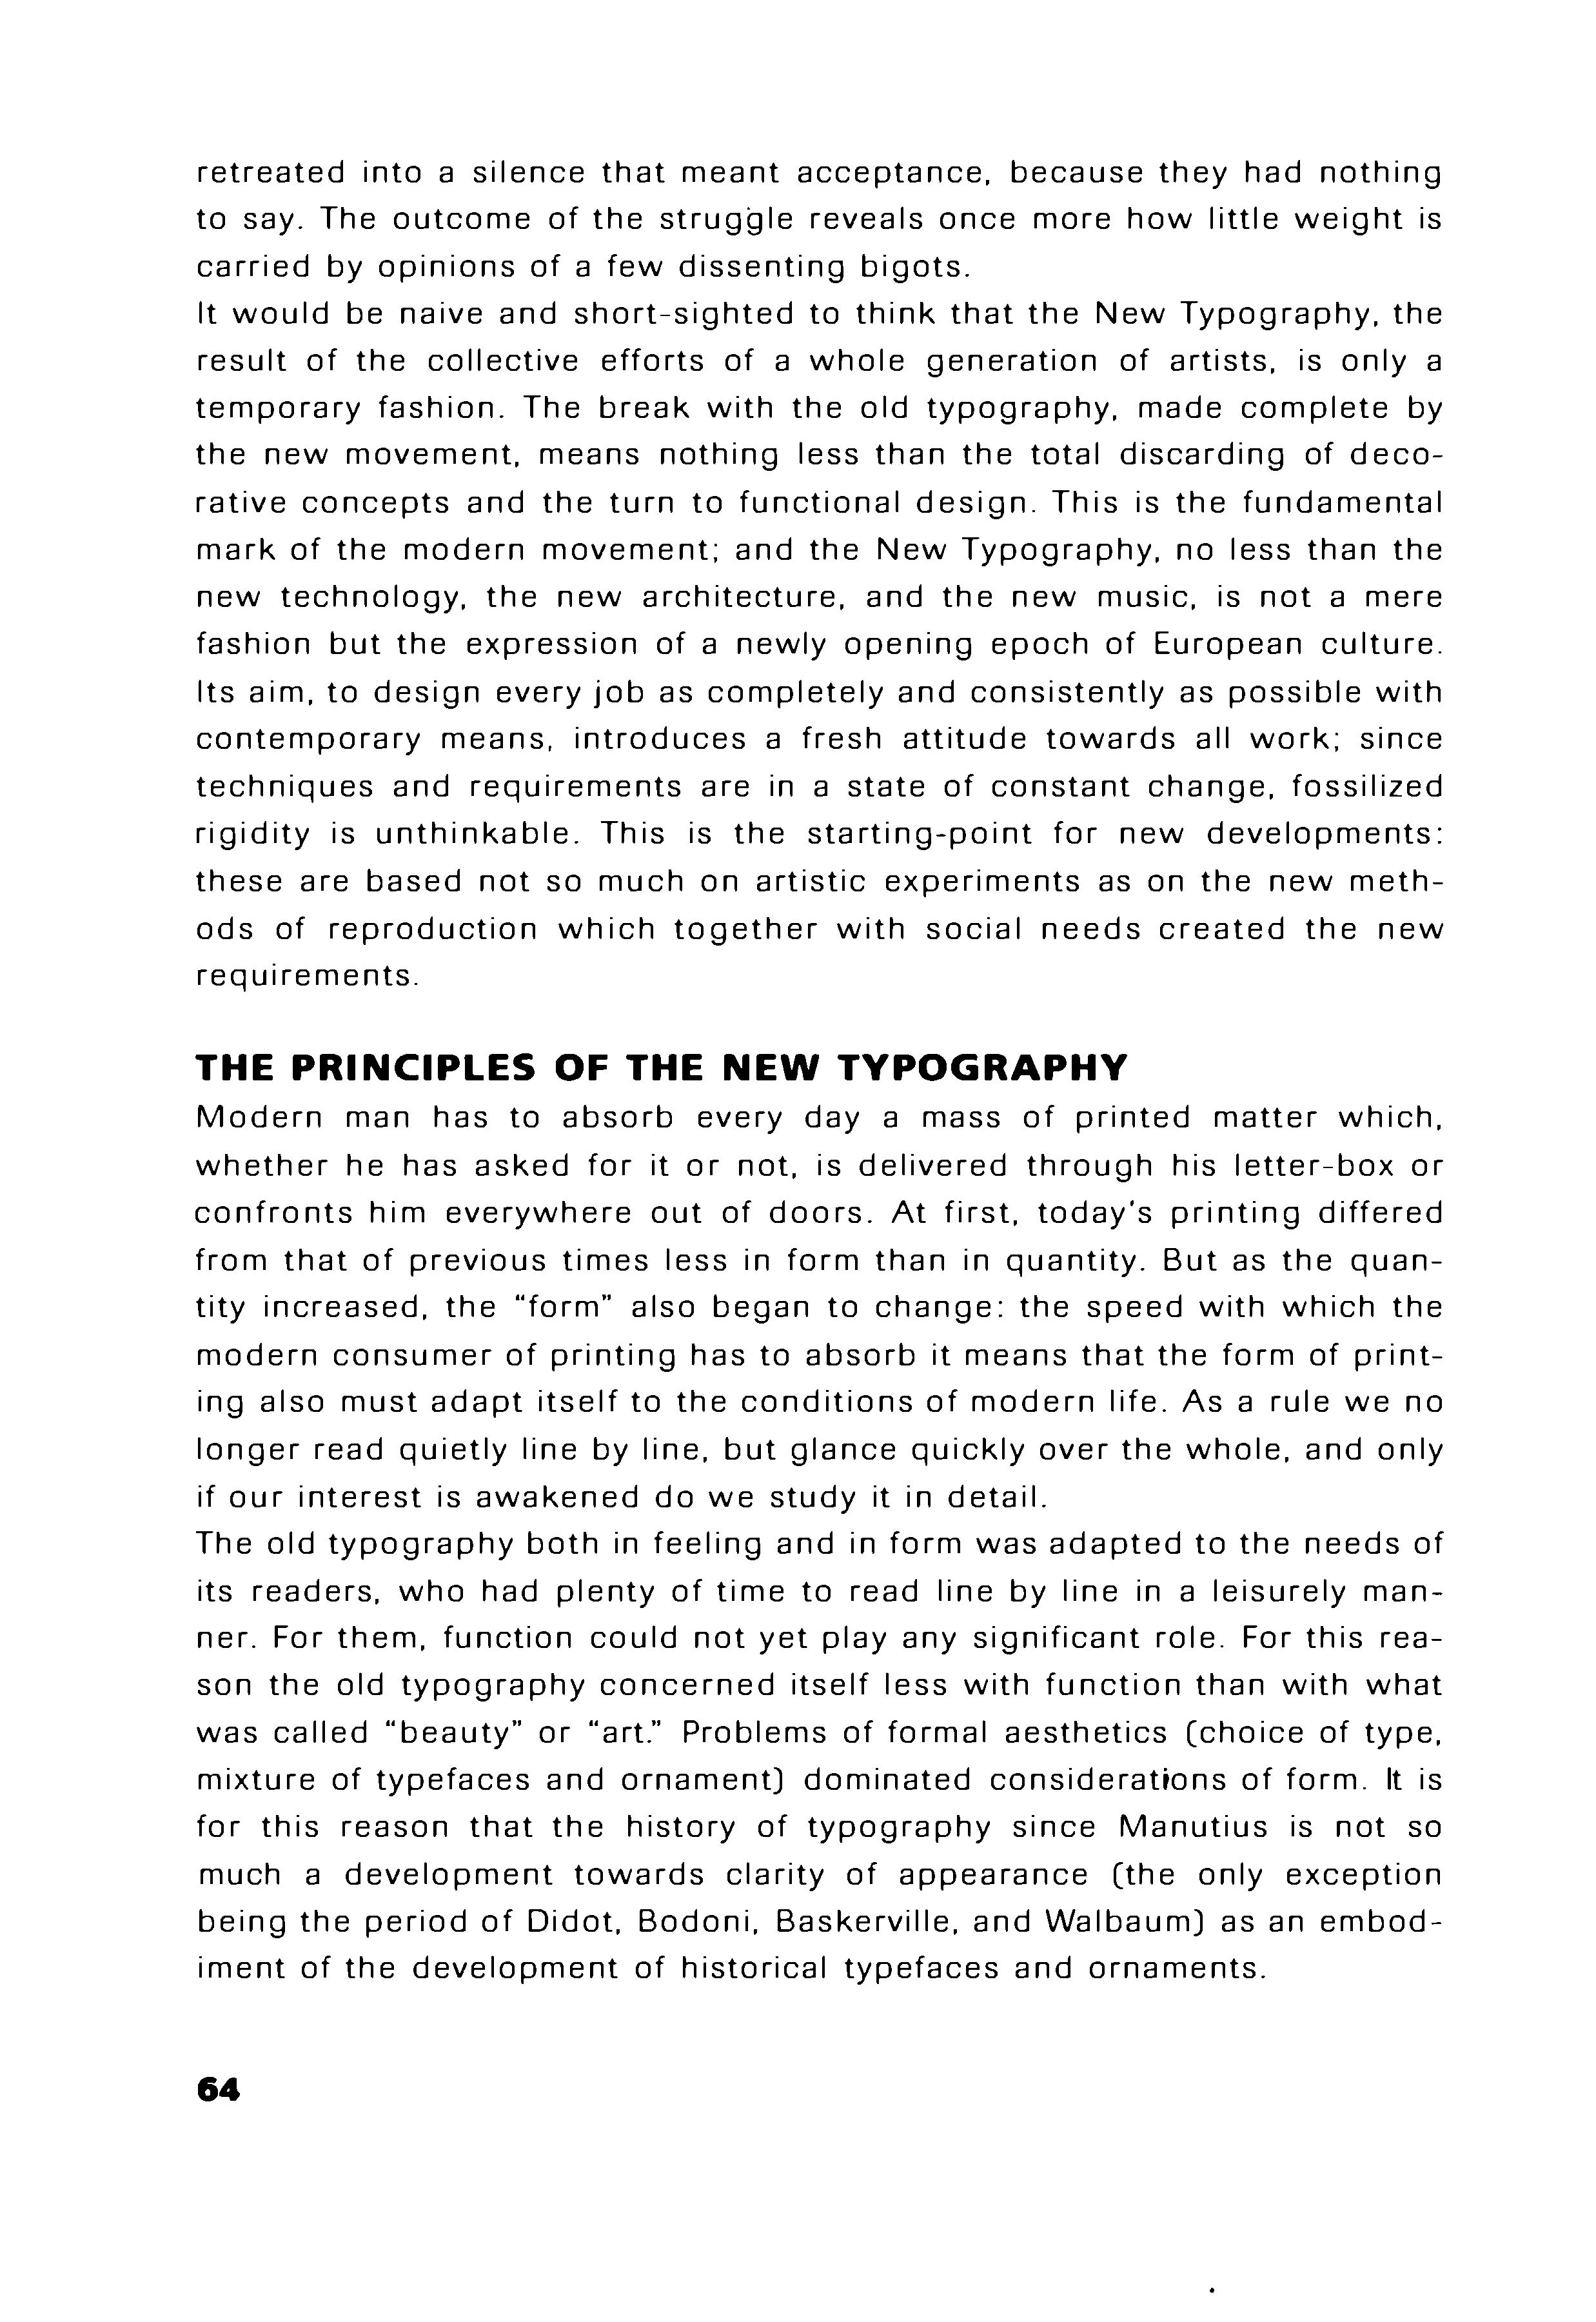 jan-tschichold-the-new-typography-1928_page_108